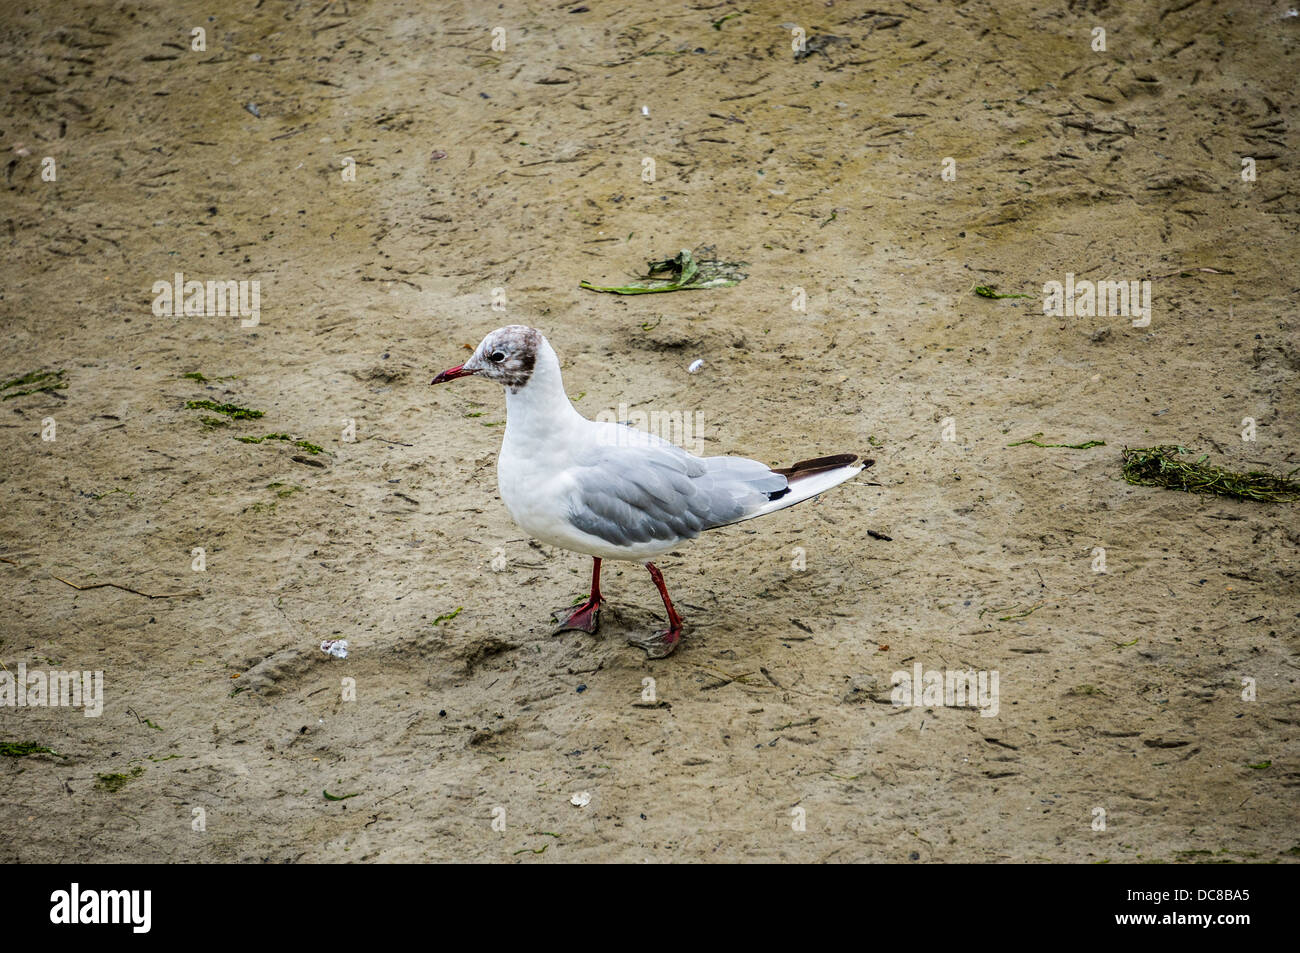 A seagull on the beach at Saint-Valery-sur-Somme, a commune in the Somme department, northern France. - Stock Image